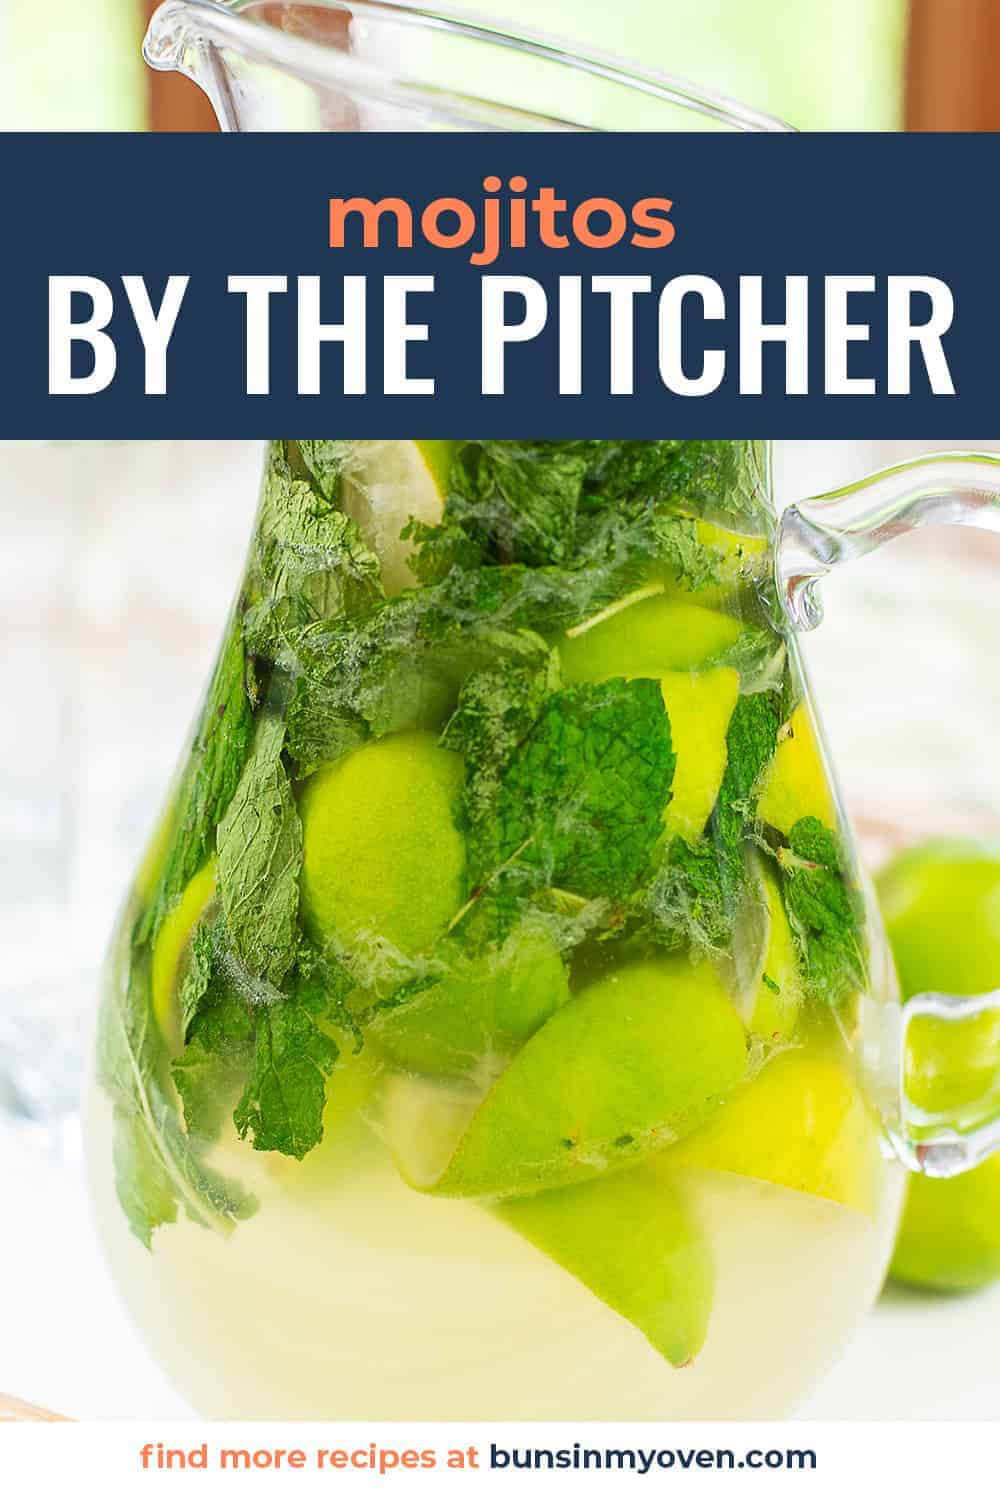 mojitos in a pitcher with text for PInterest.